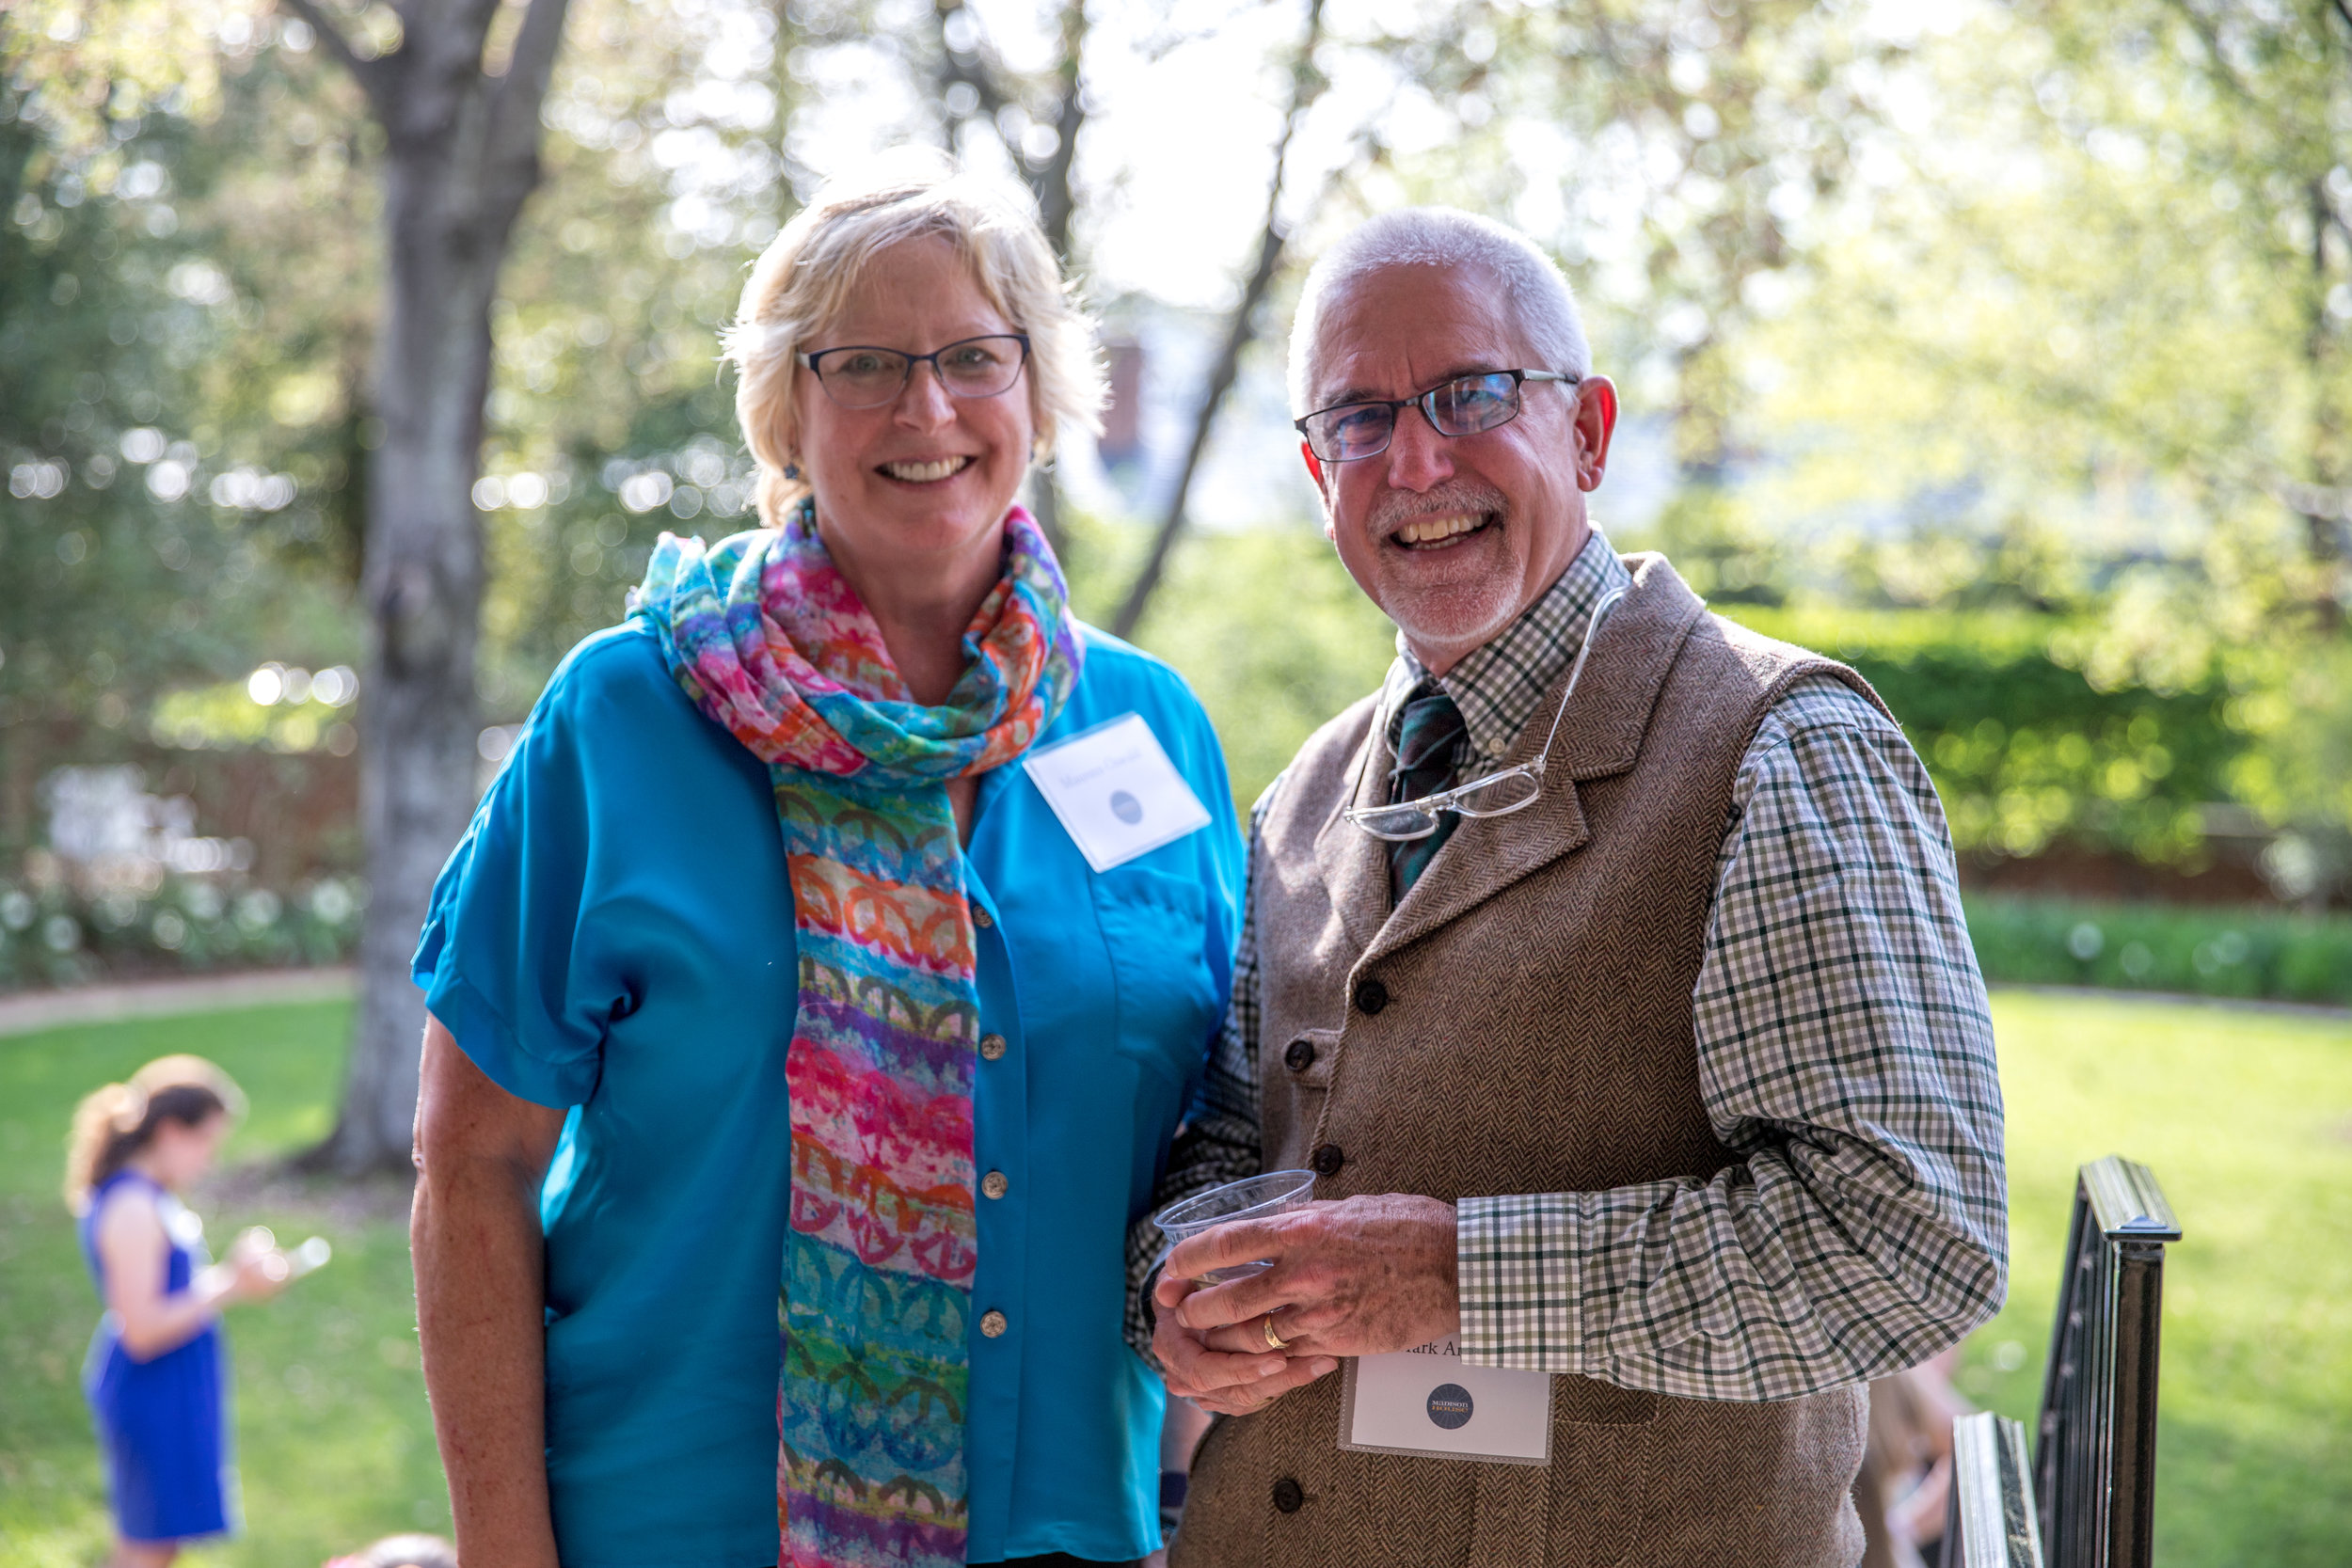 Longtime Madison House Community Partners Maureen Oswald, Volunteer Coordinator for the UVA Hospital, and Mark Andrews, Executive Director of Therapeutic Adventures, Inc.